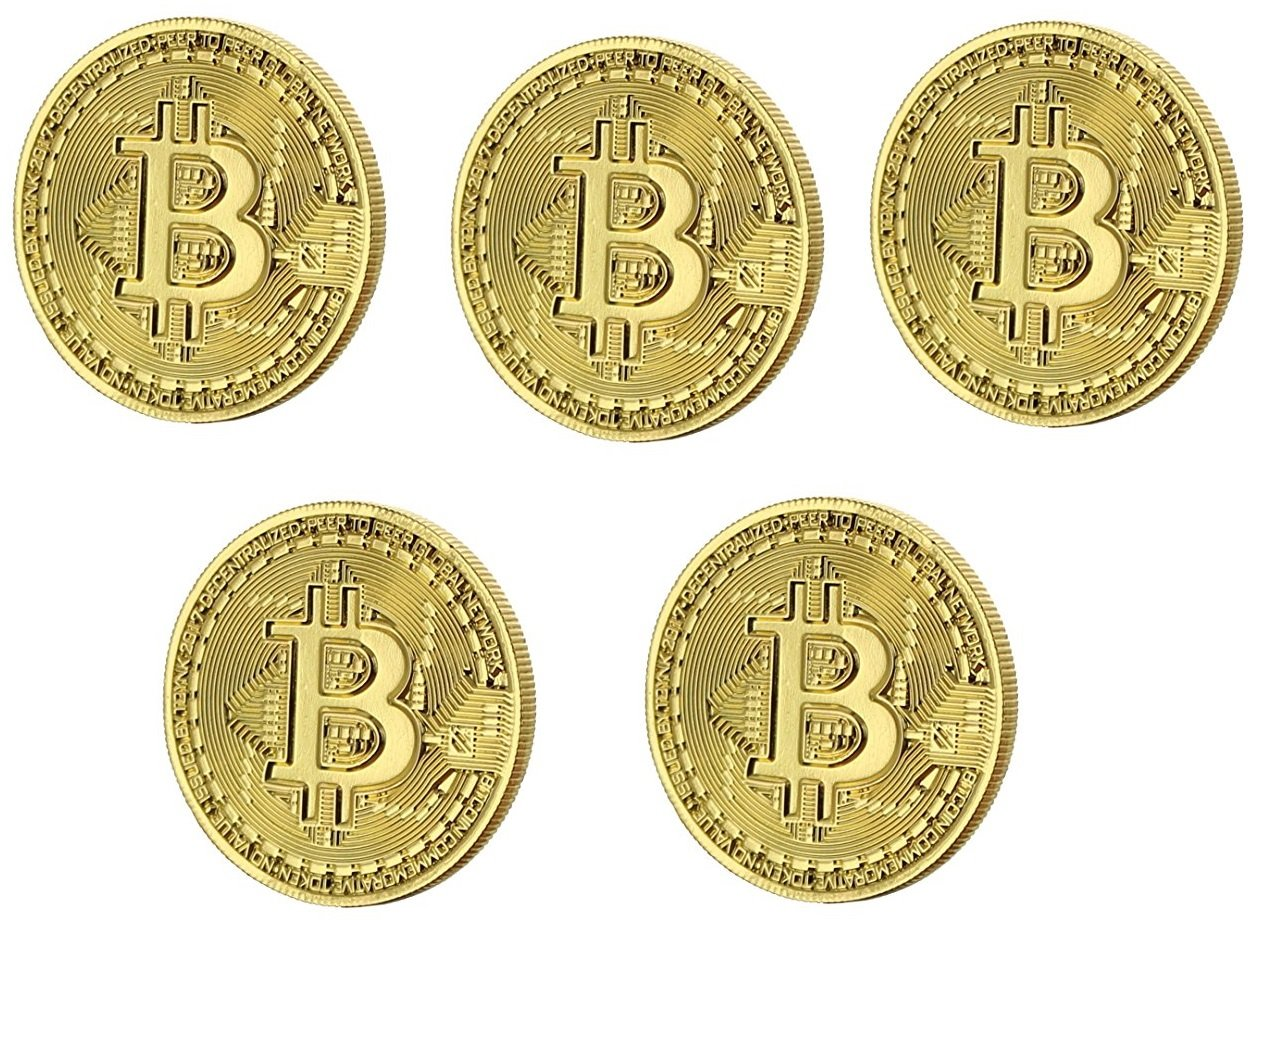 KRIWIN® 5 Pieces Gold Plated Physical Bitcoins BTC Board Game Token Poker  Chip Challenge Coin Art Deluxe Round Medallion Novelty Gift + Plastic